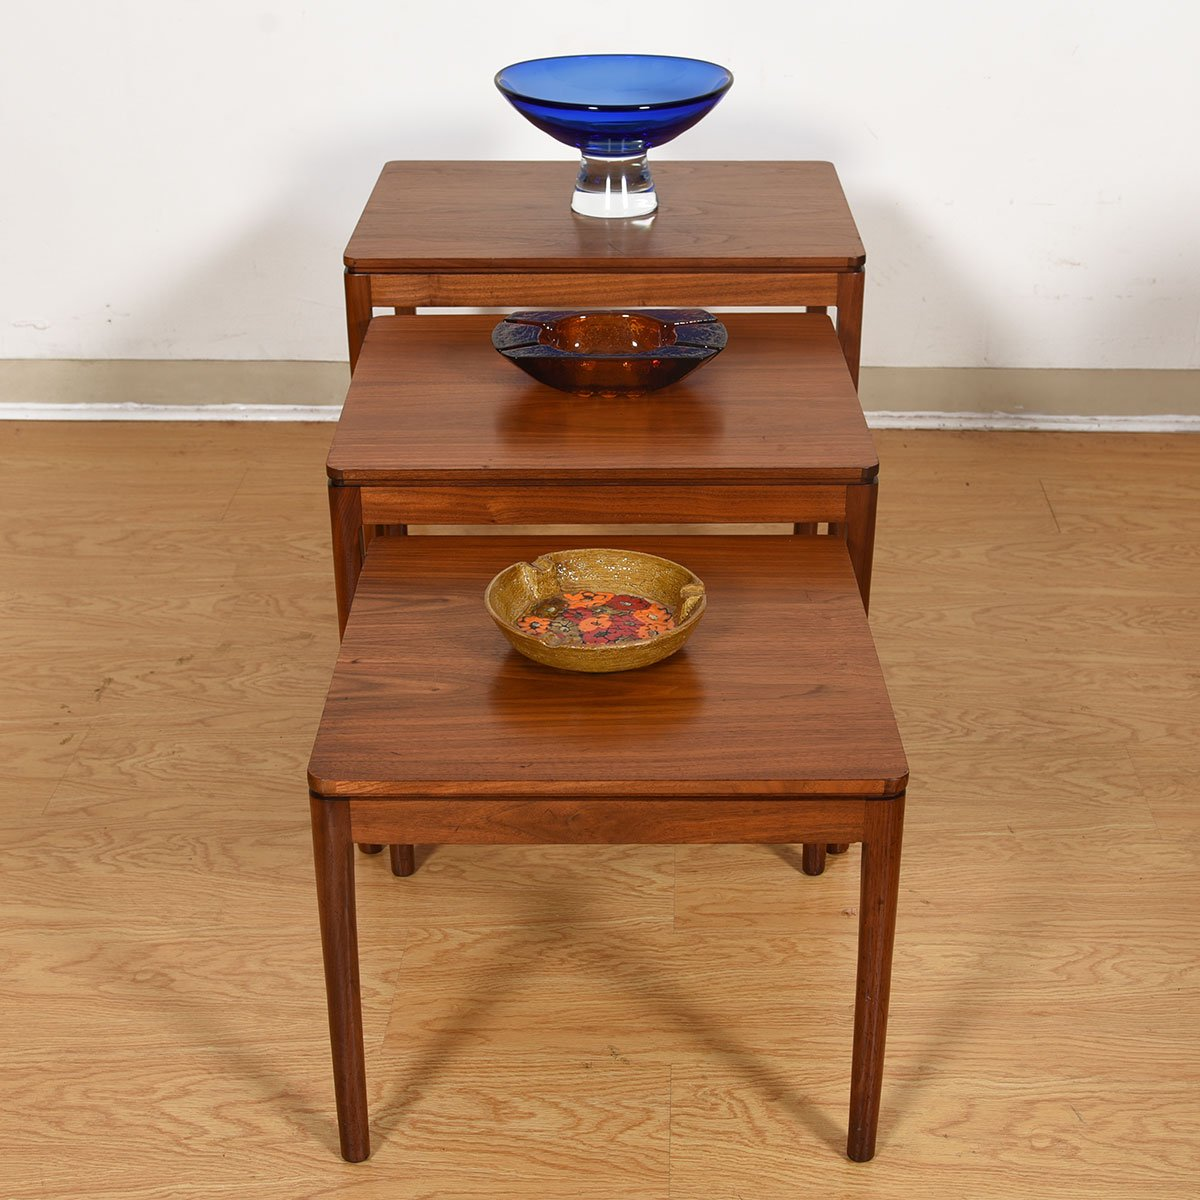 Set of 3 Drexel Mid Century Walnut Nesting Tables